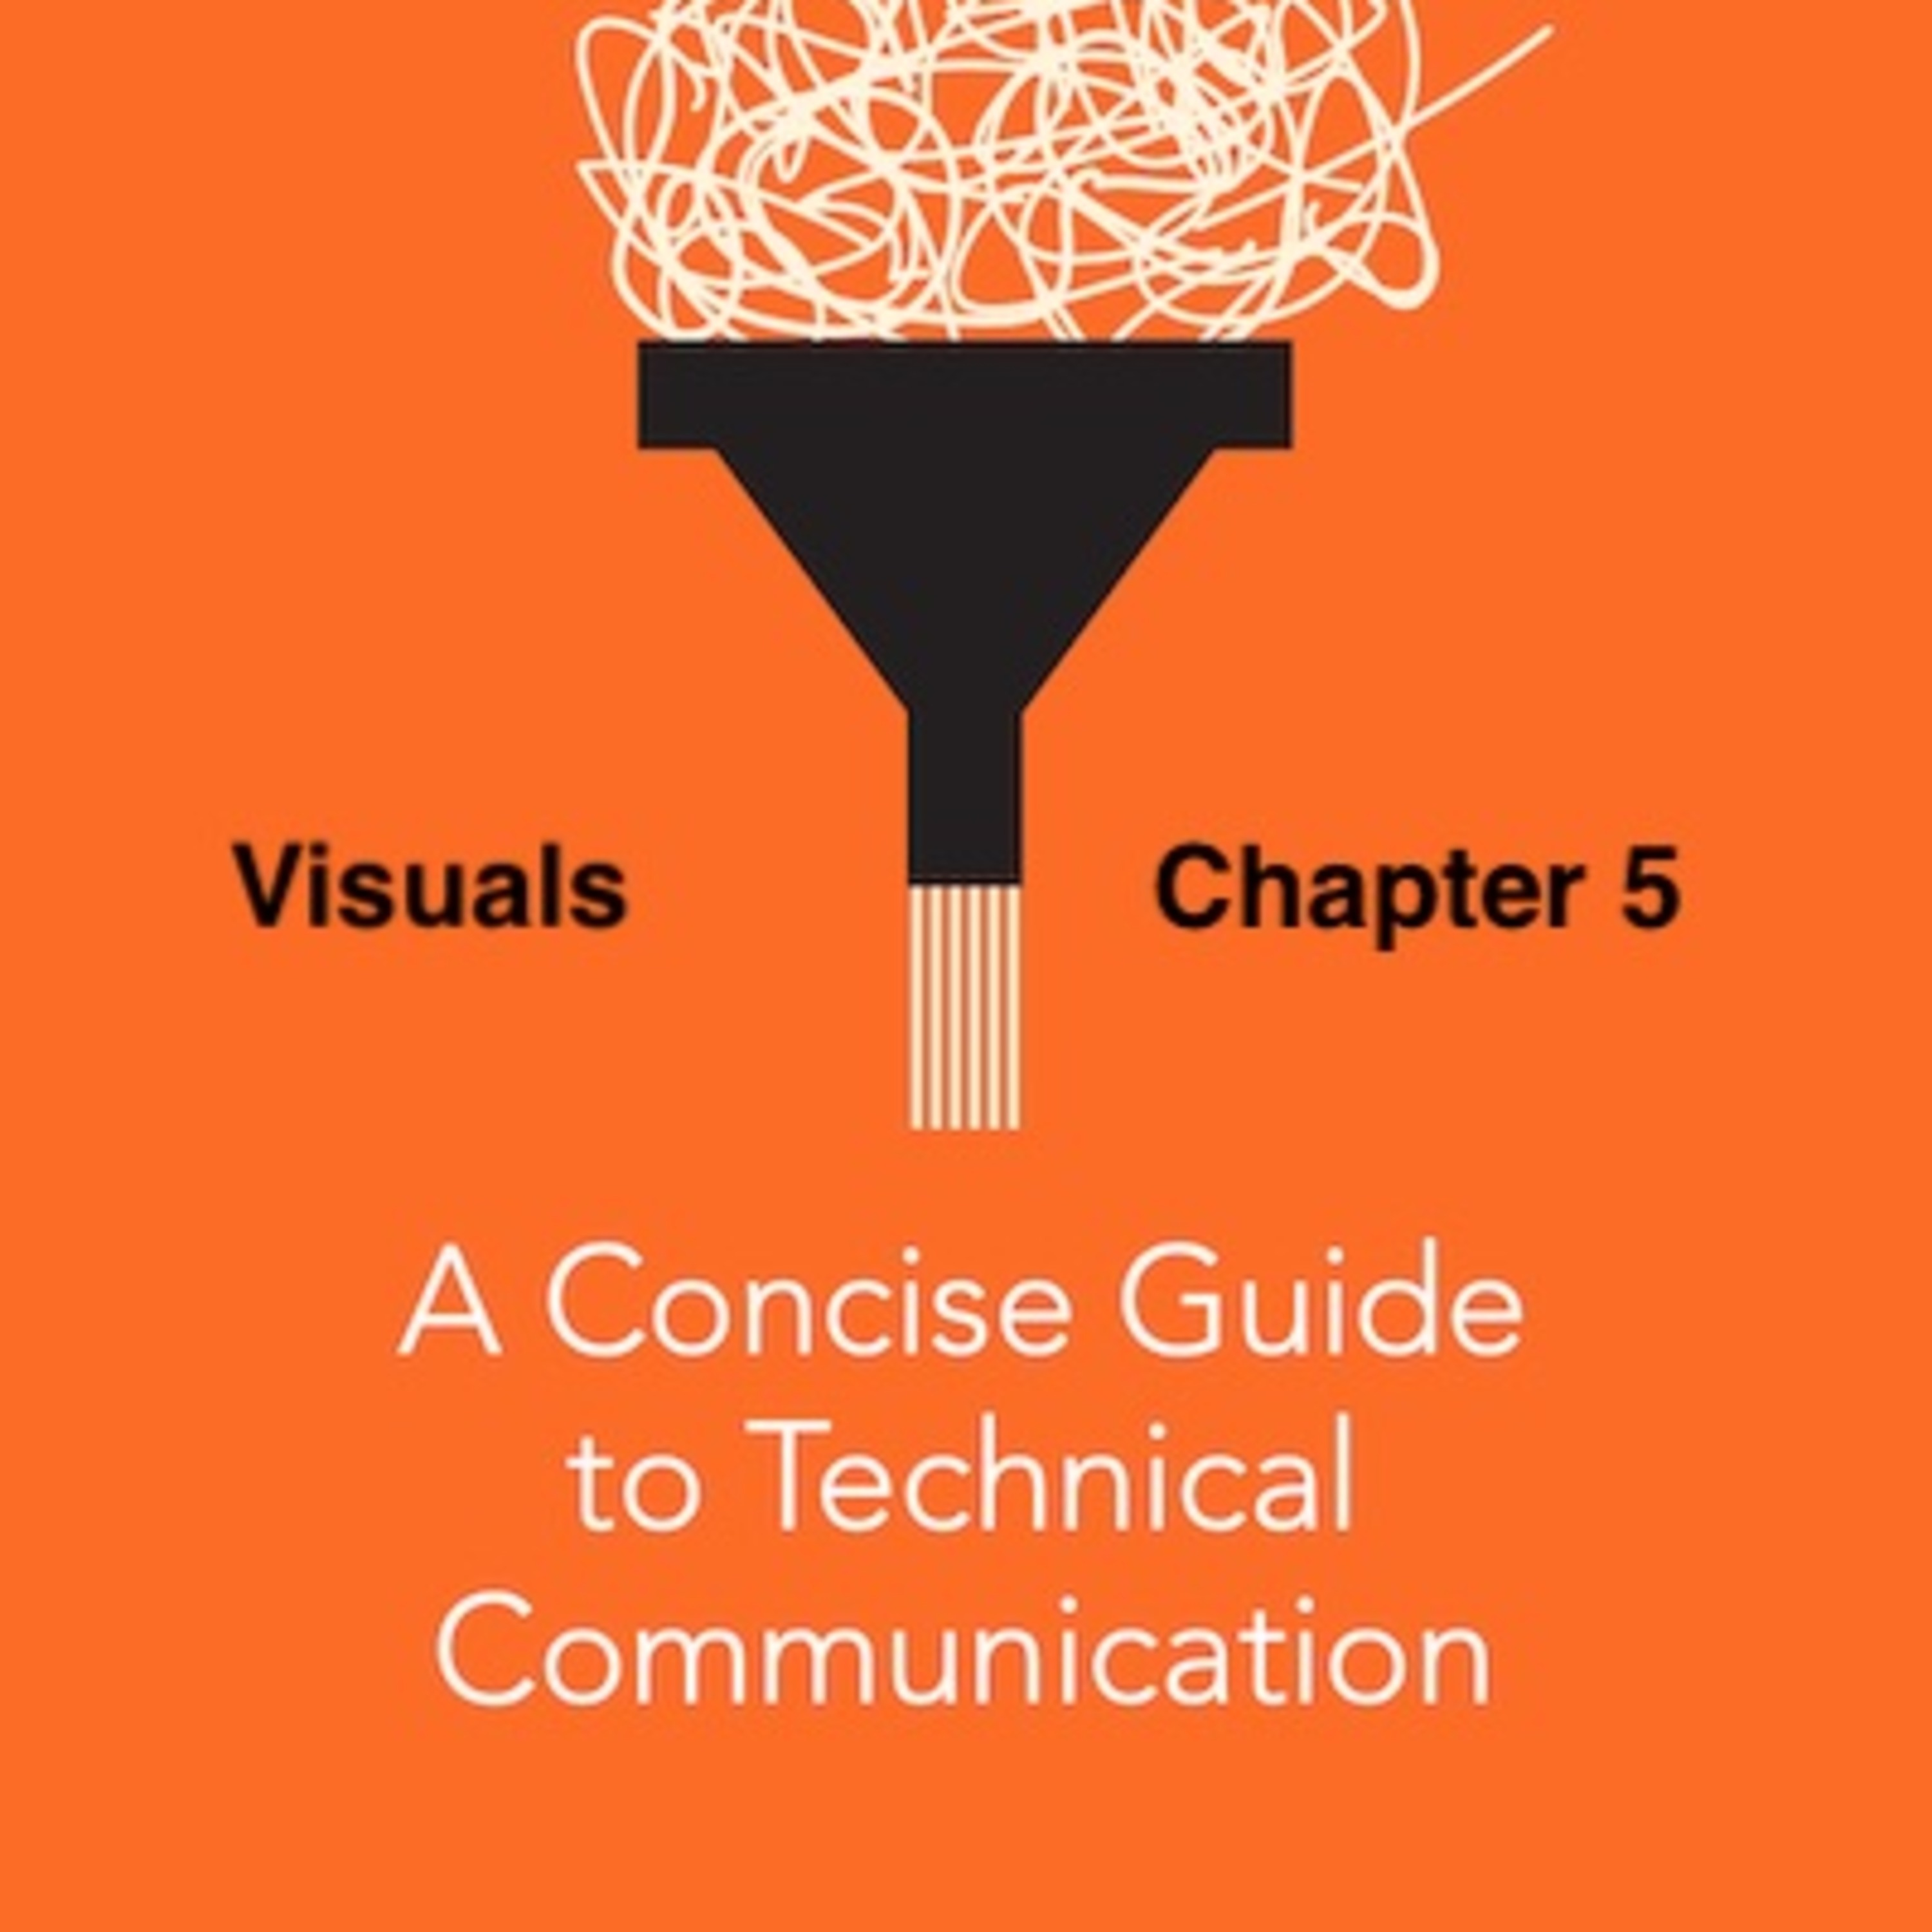 Episode 47: When to use visuals in technical communication